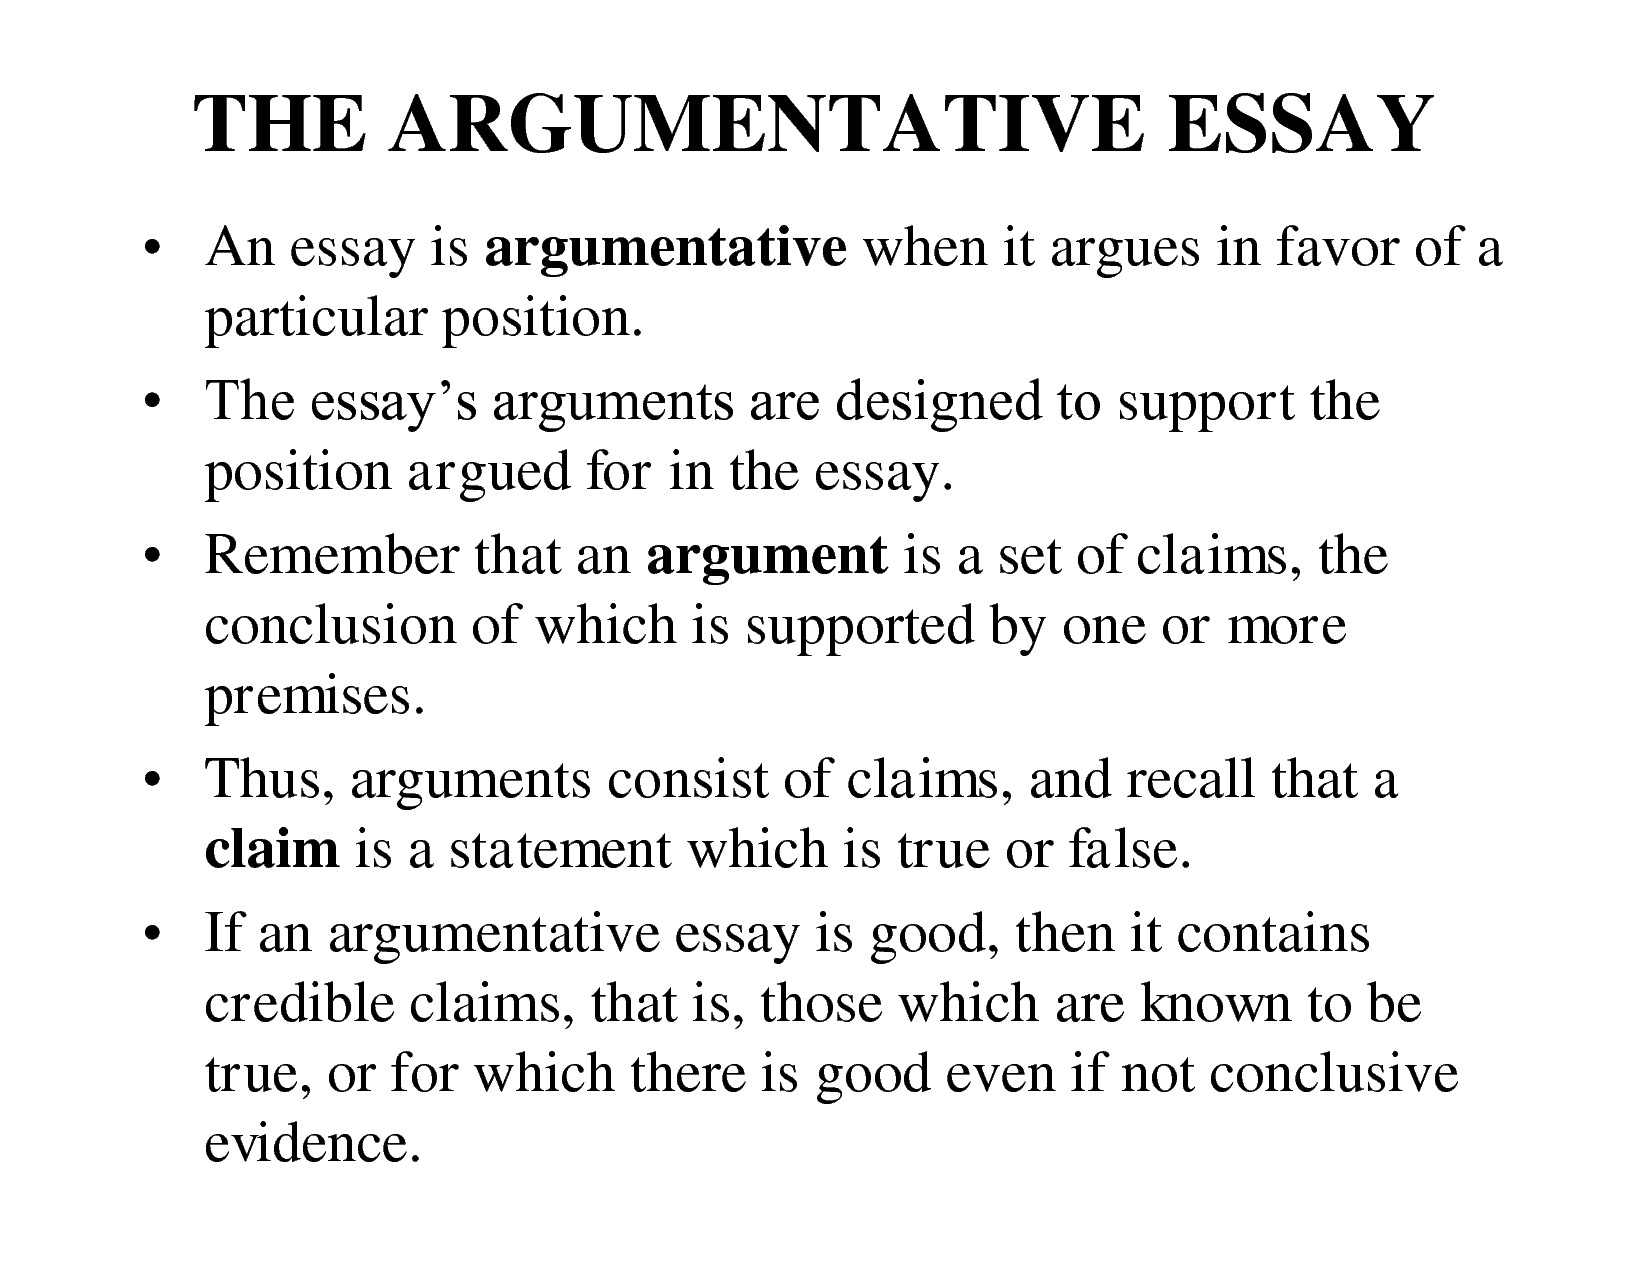 002 Ways To Write Conclusion For An Argumentative Essay How Conclude Top Teach Me A Good Paragraph Step By Ppt Middle School Full